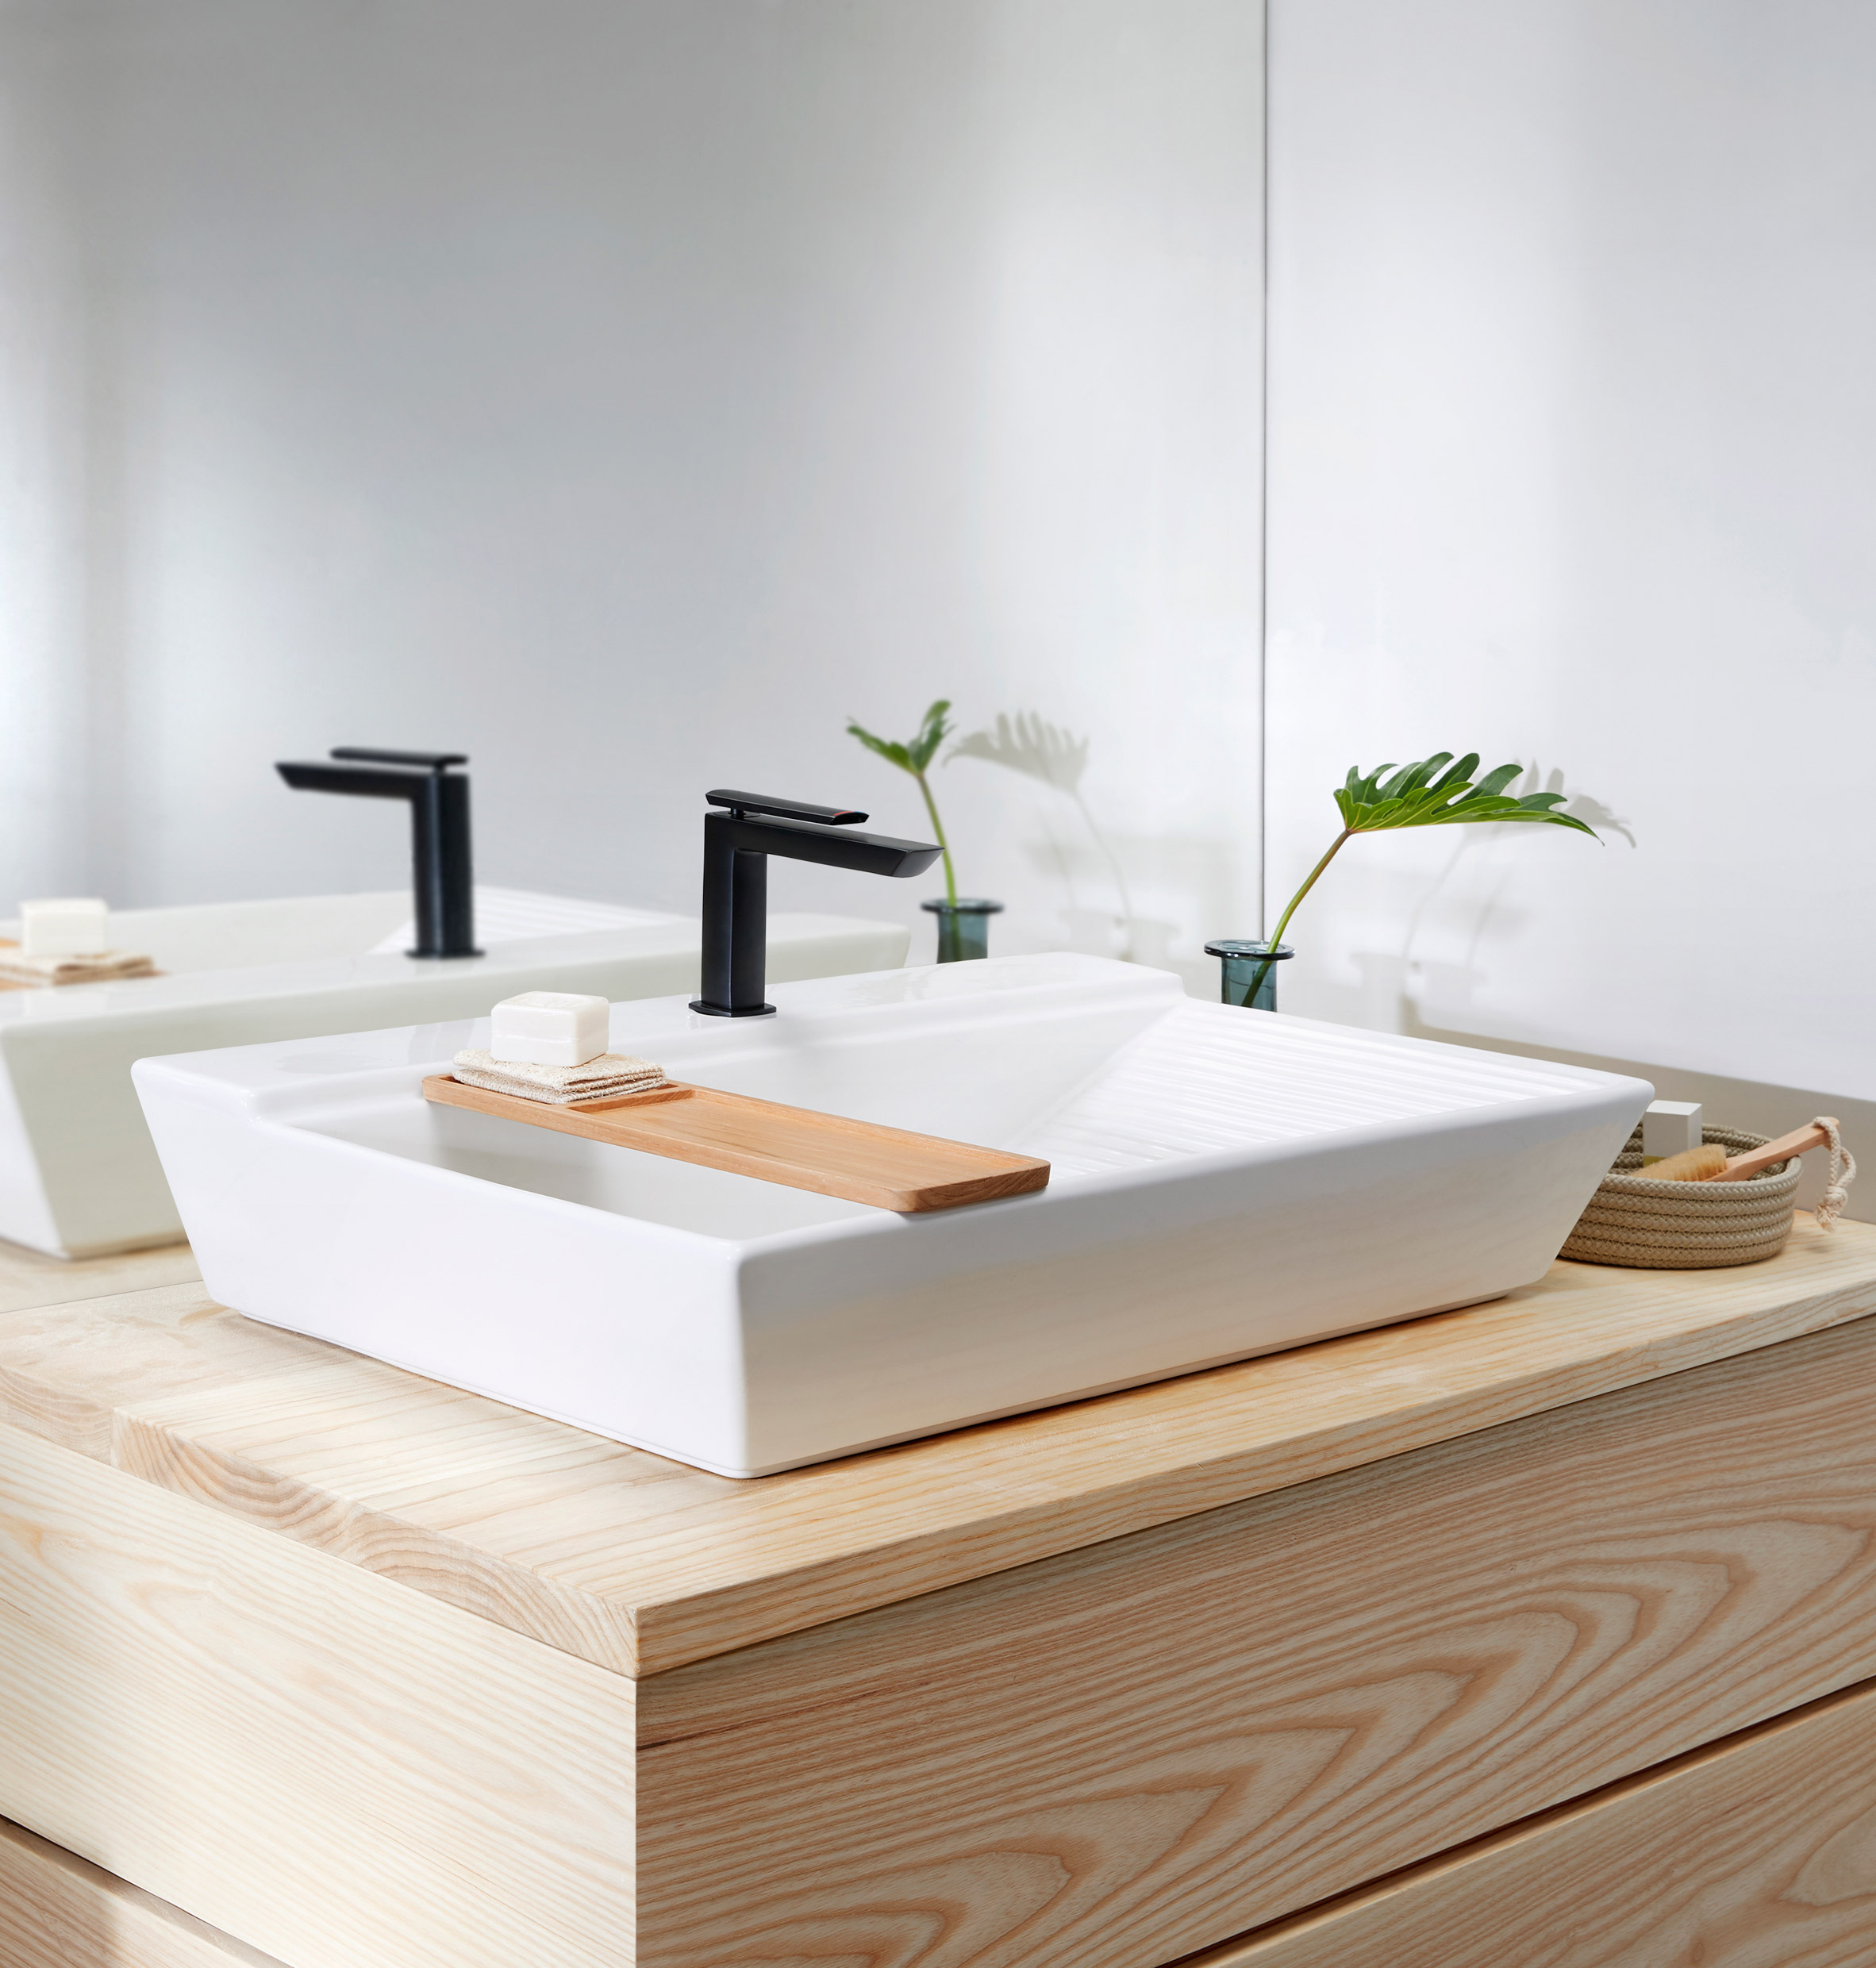 User Driven And Functionally Versatile, The Skive Collection Is Conceptualised From